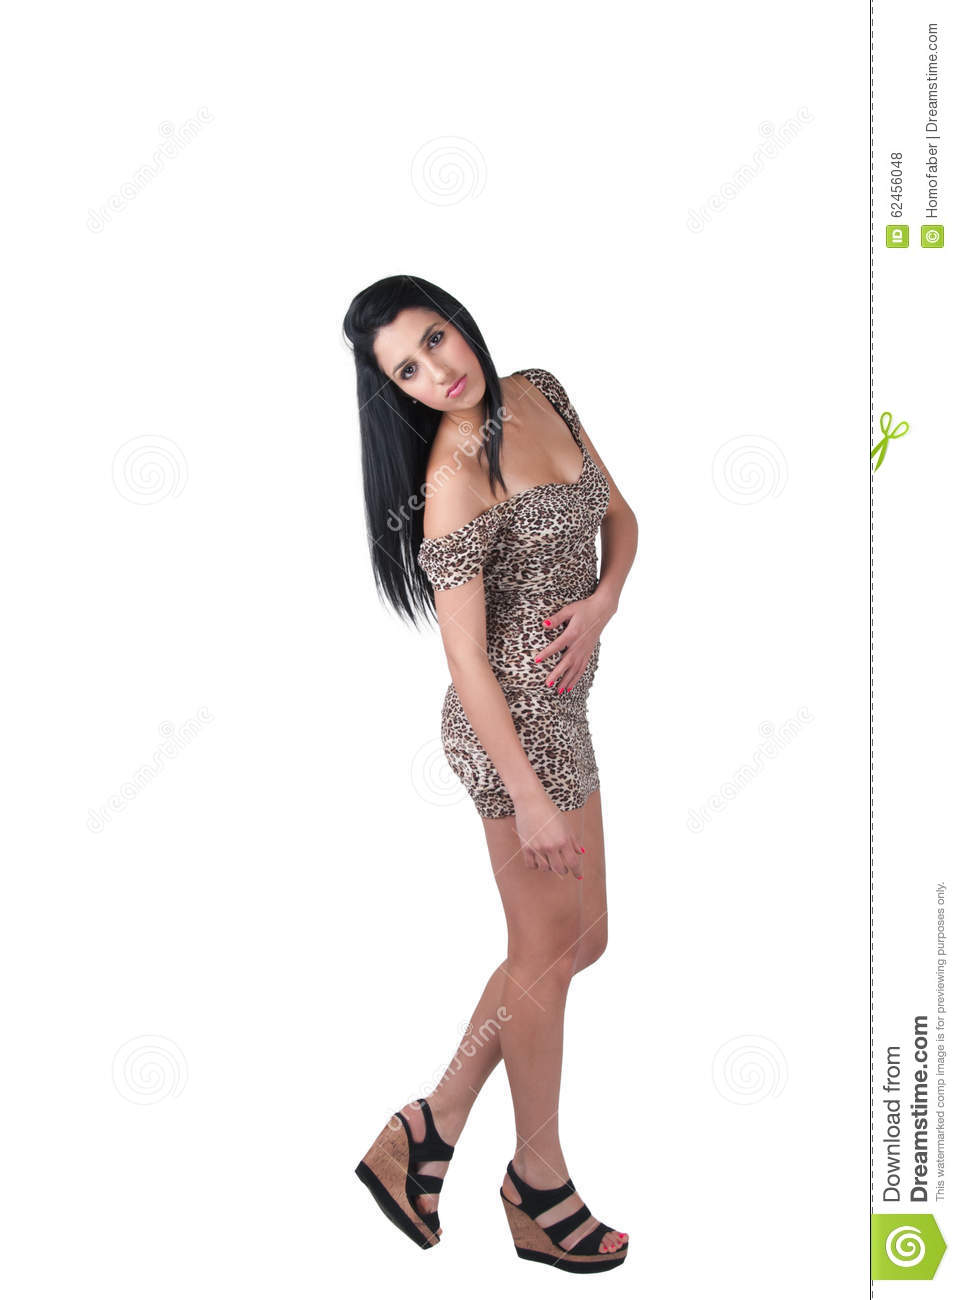 Beautiful fashion model with long brunette hair wear animal print dress and black  wedge sandals. Isolated white background full length body shoot b954662b2